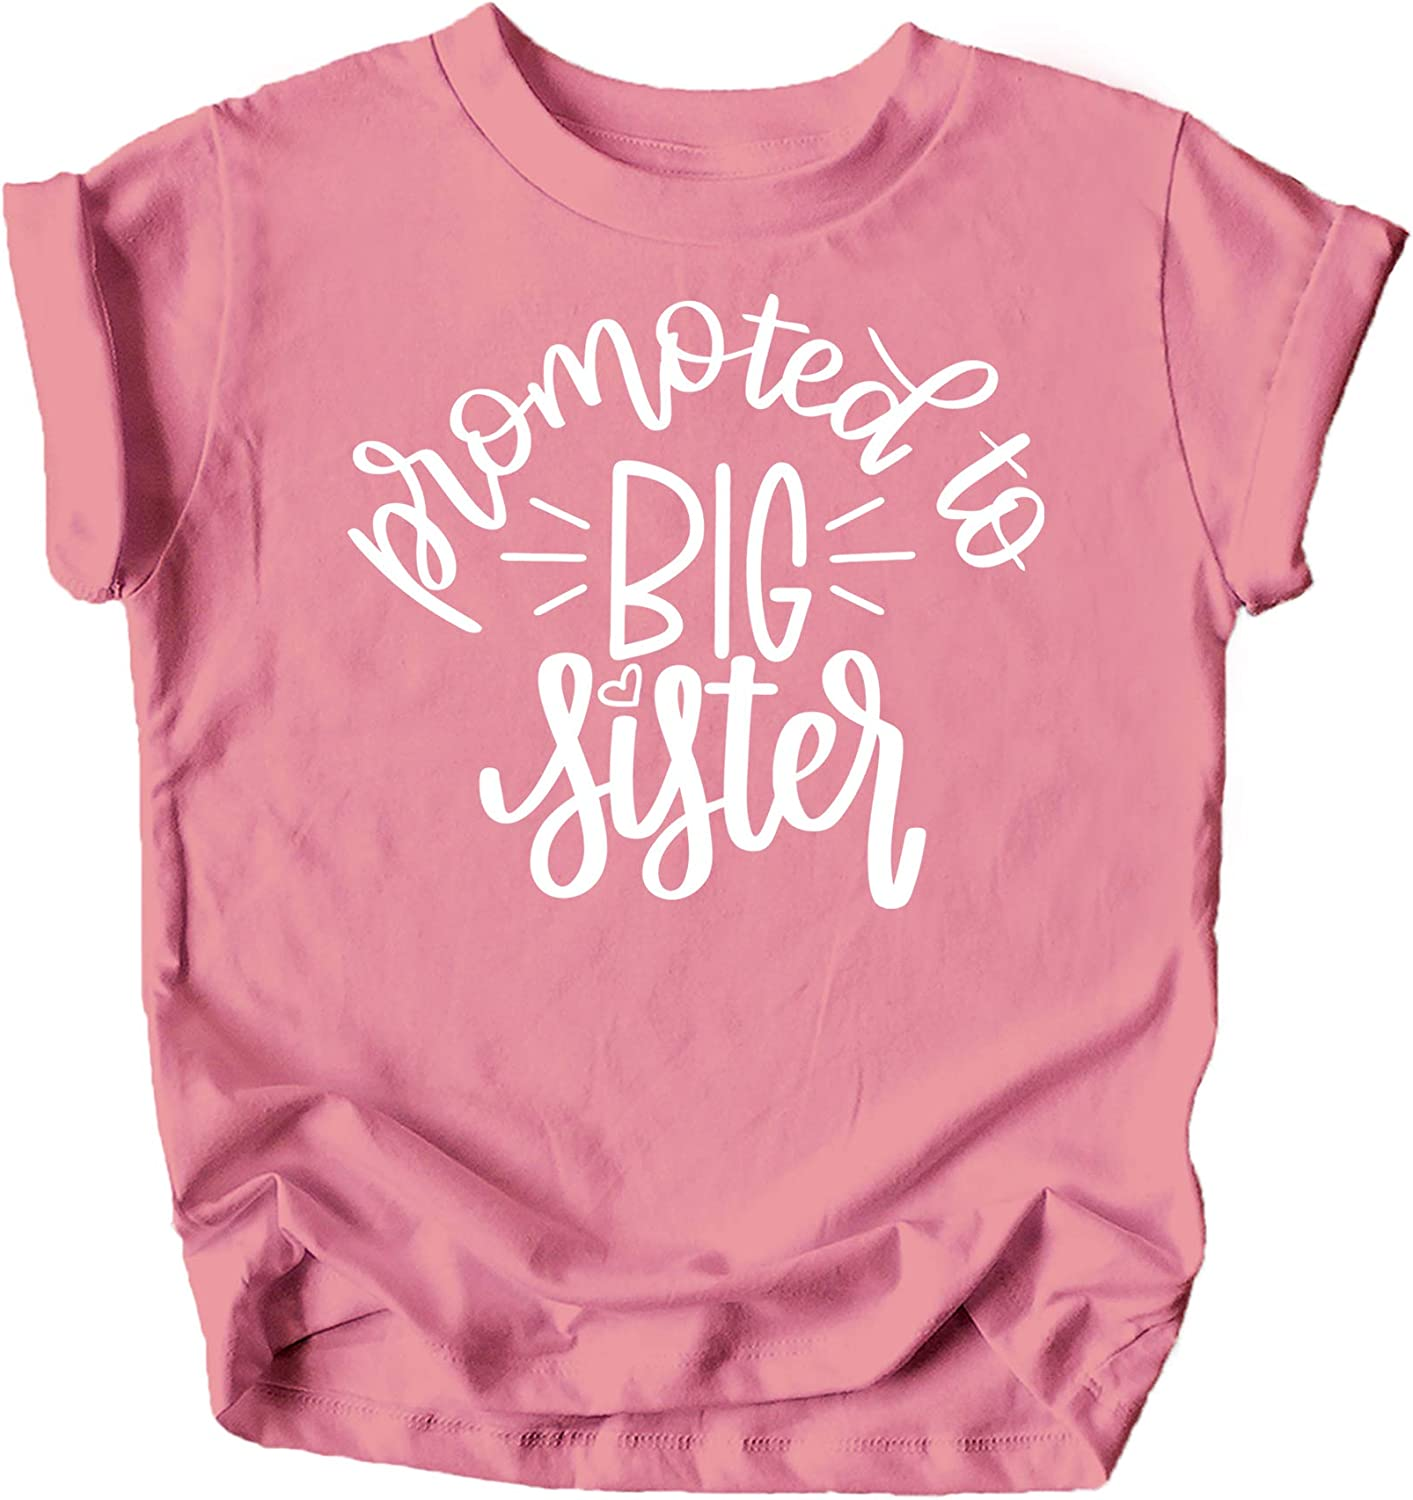 Olive Loves Apple Promoted to Big Sister Colorful Announcement T-Shirt for Baby and Toddler Girls Sibling Outfits